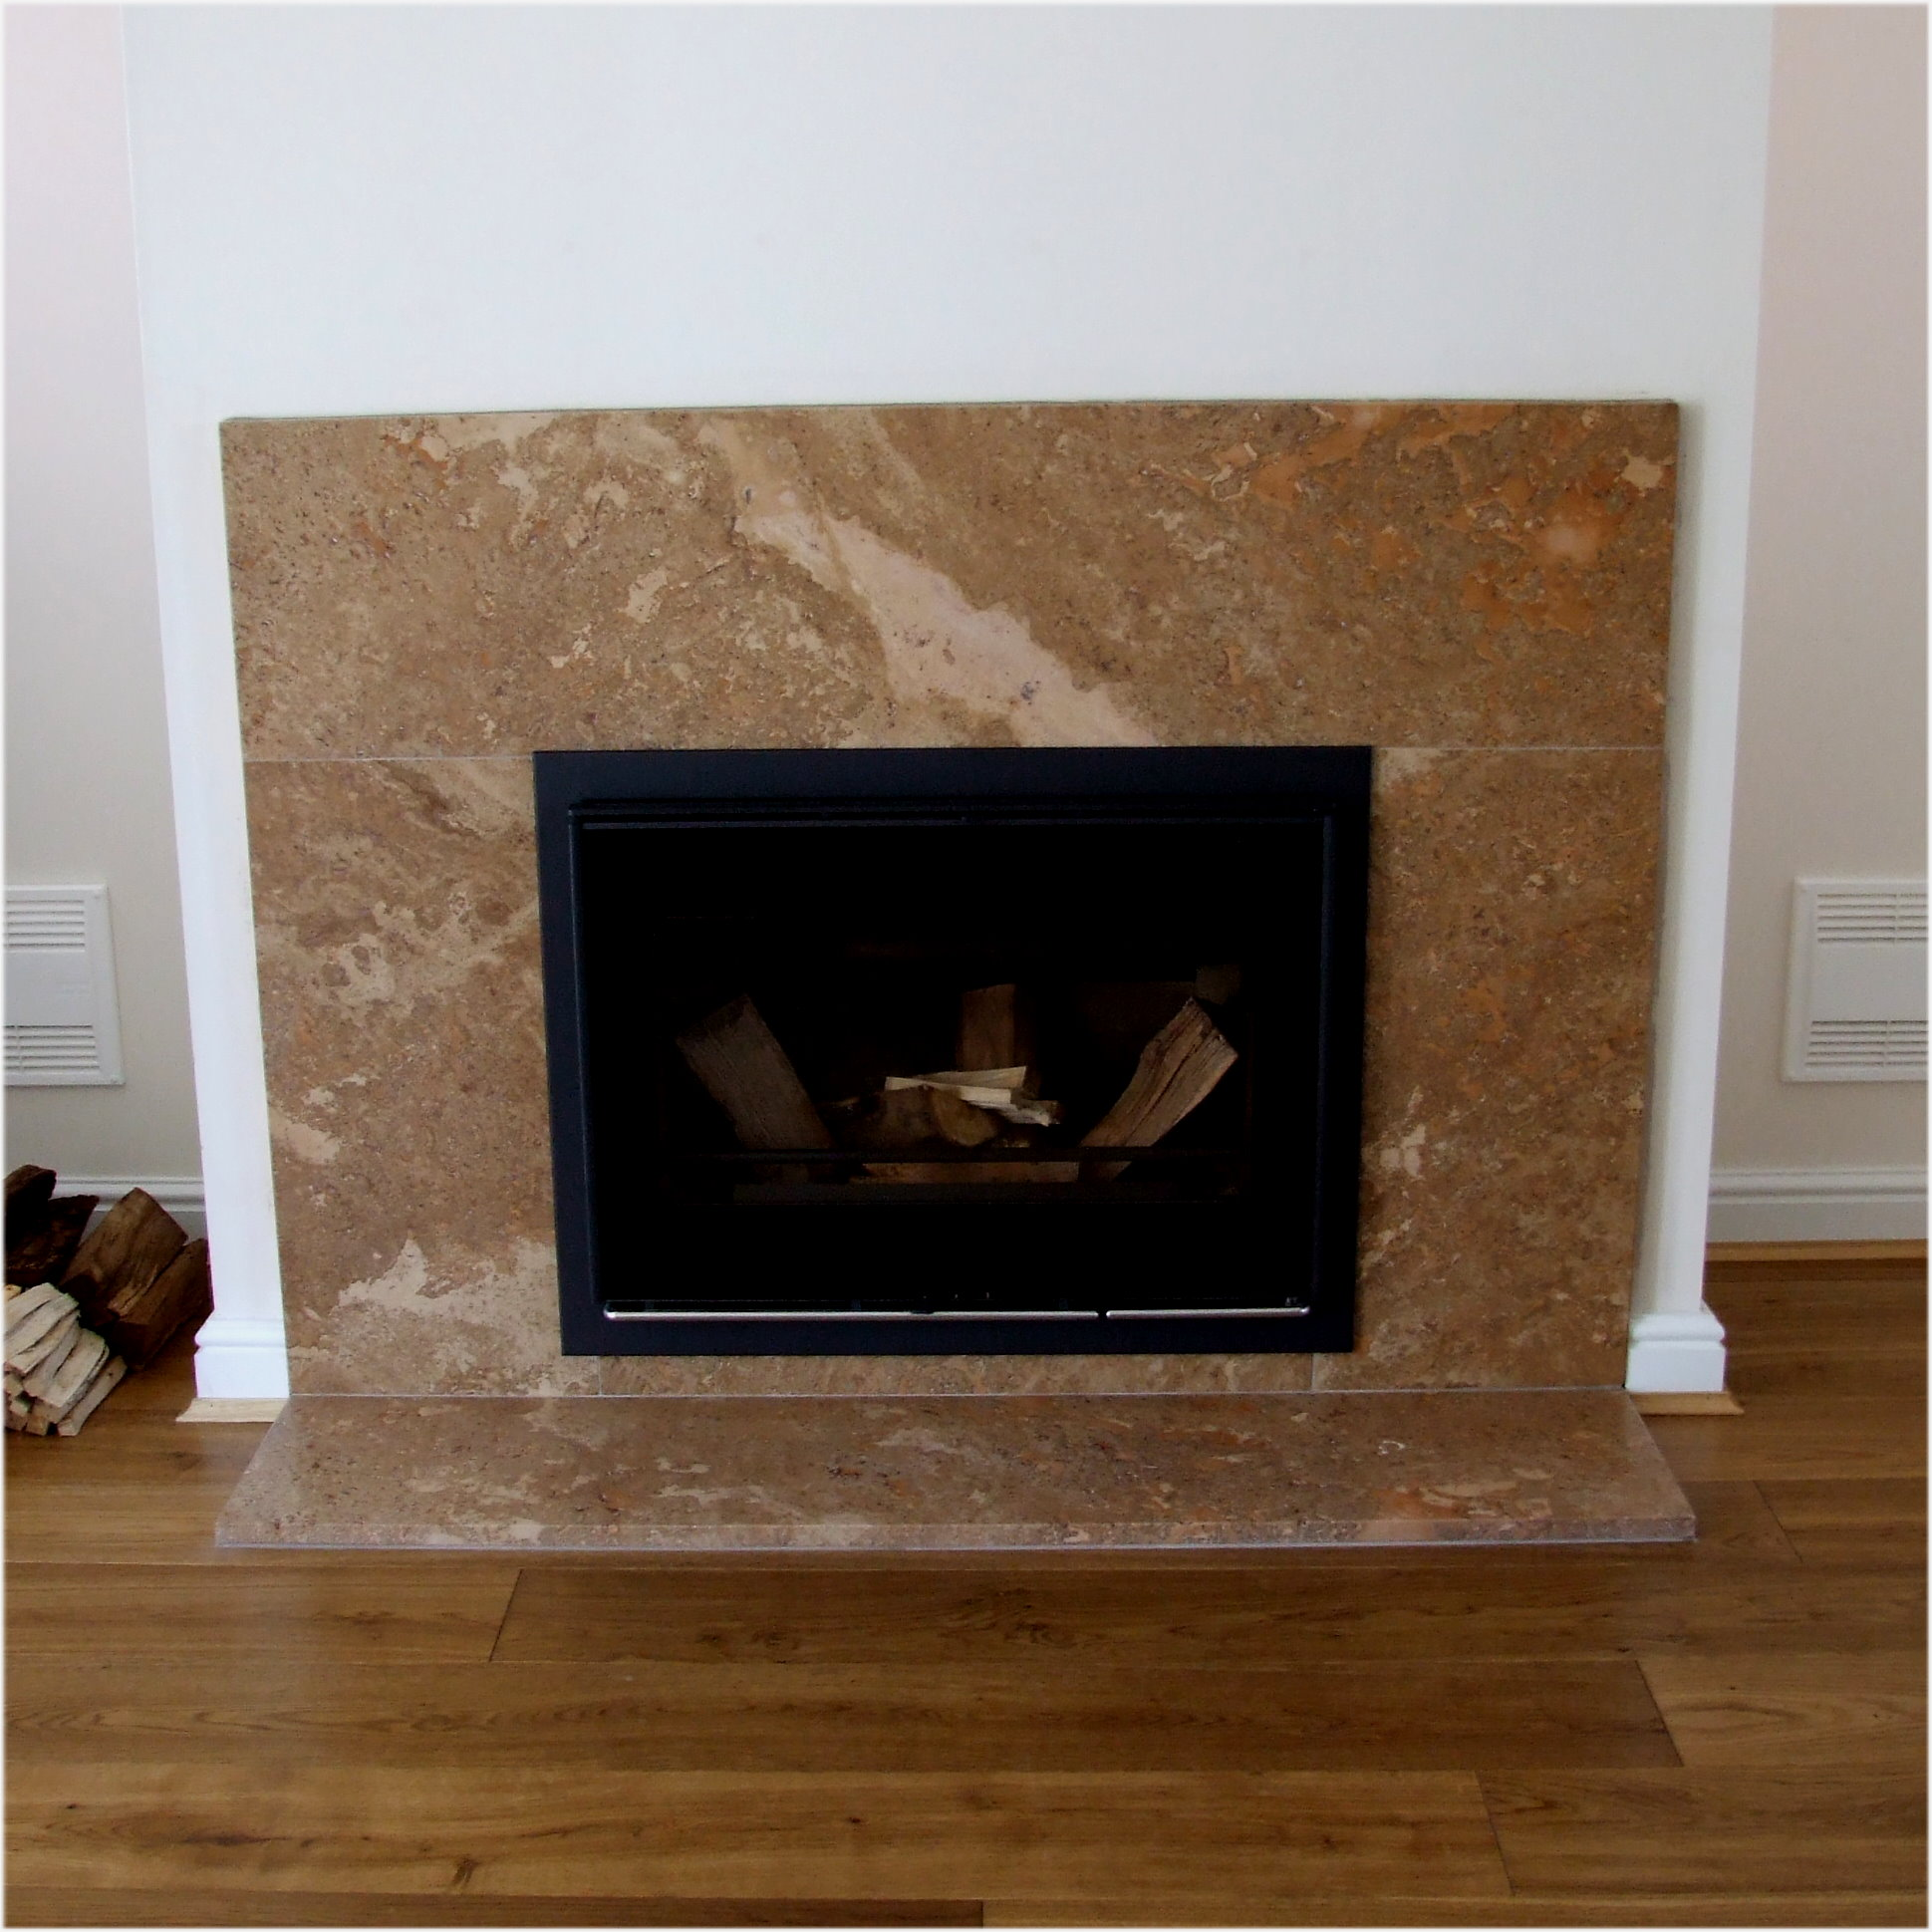 Hearth Designs: Why Not To Set The Bar For The Fireplace Hearth Stone Now